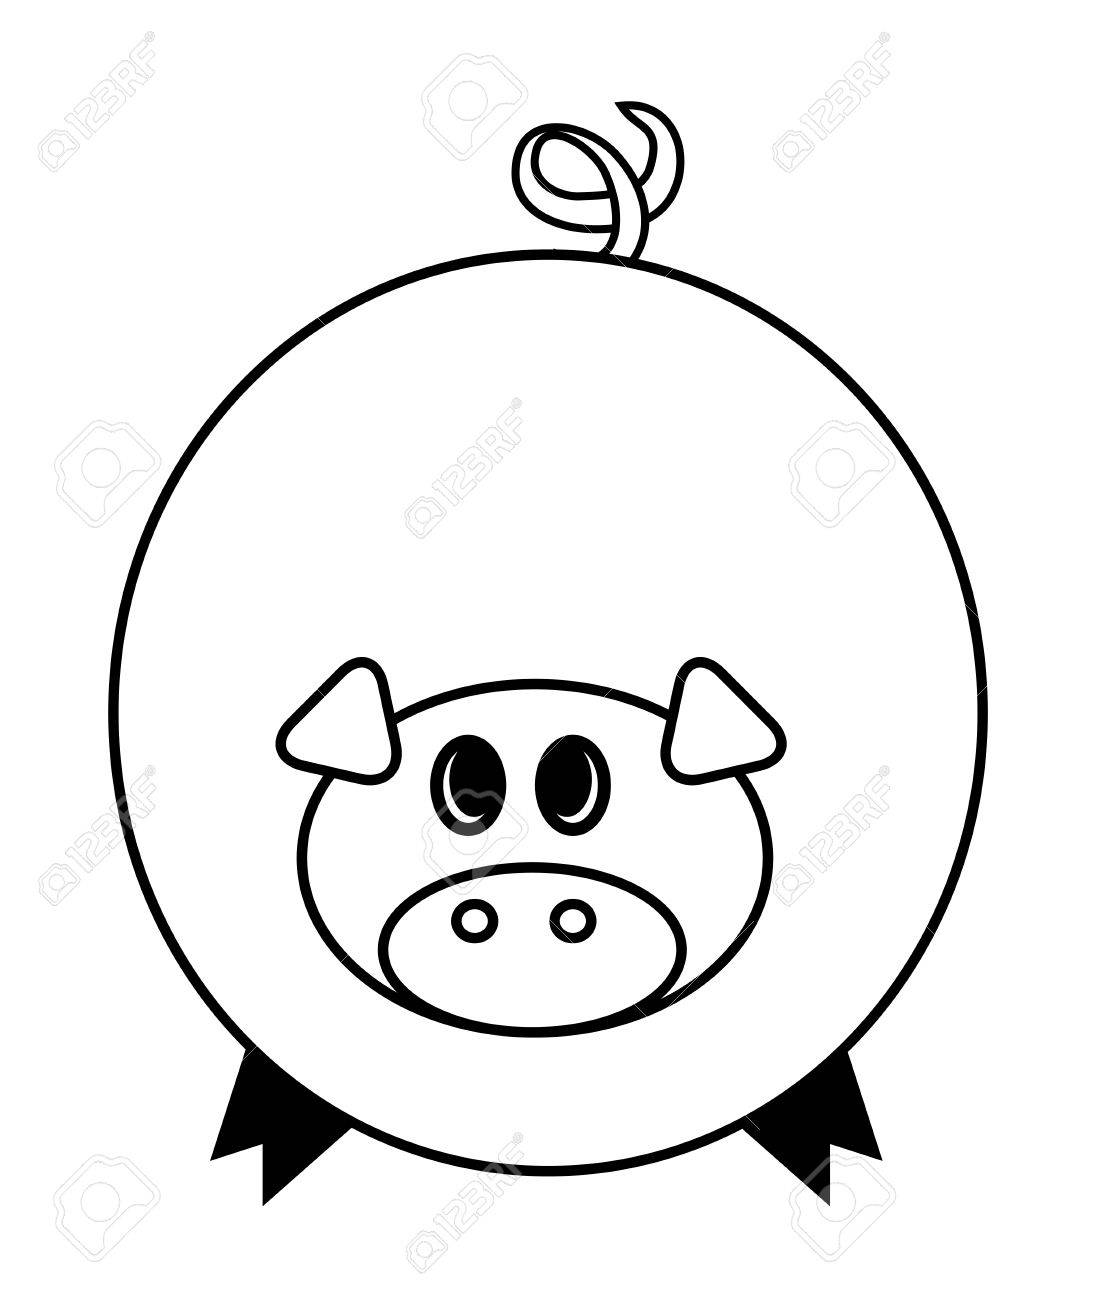 hight resolution of cartoon pig vector symbol icon design cute animal illustration isolated on white background stock vector